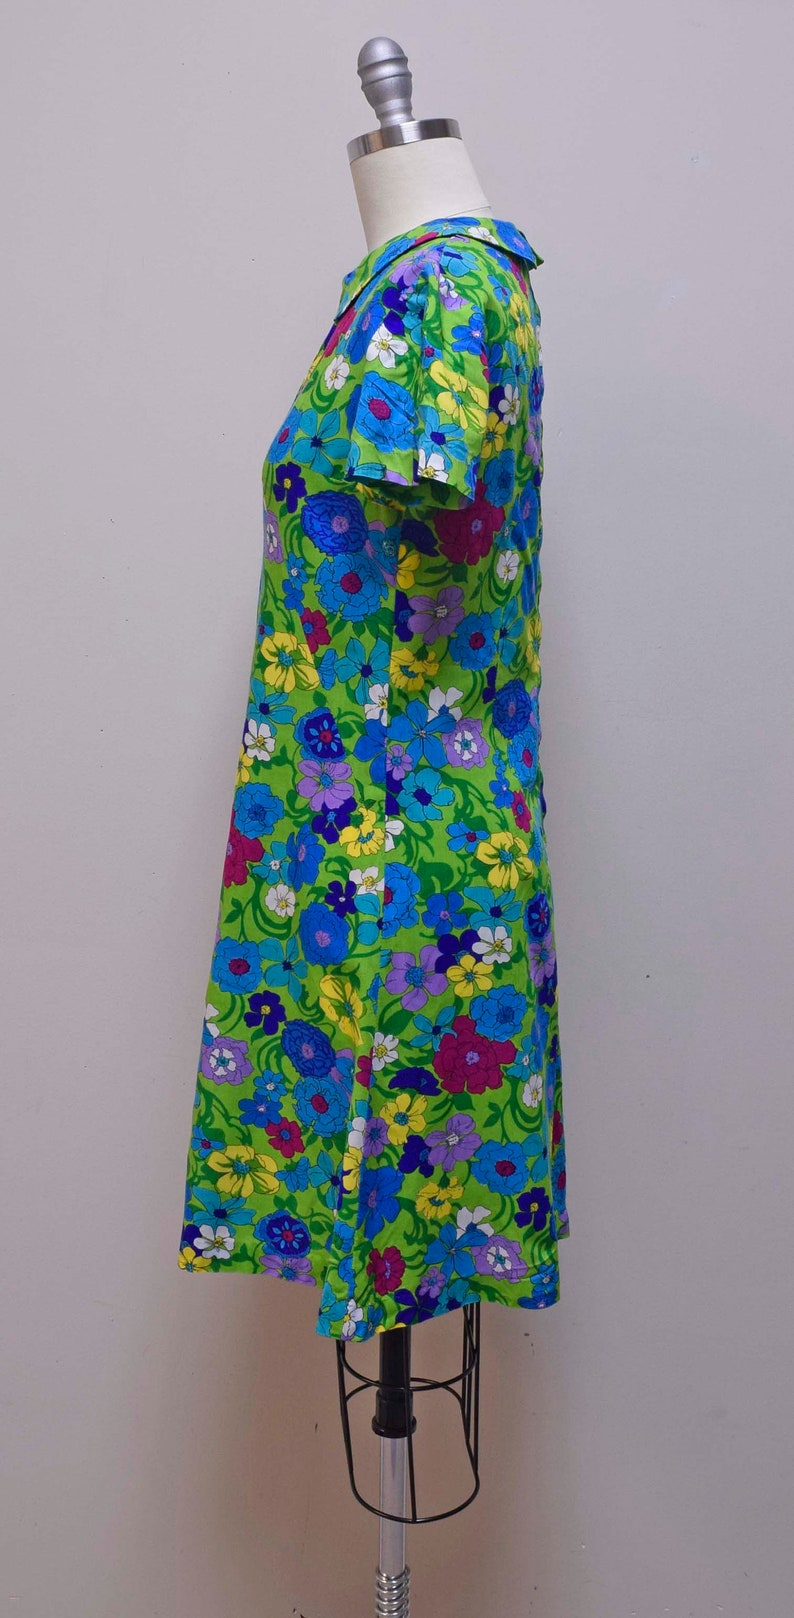 Vintage 1960s70s Handmade Homemade Green Mod Floral Print Fit /& Flare Dress XS